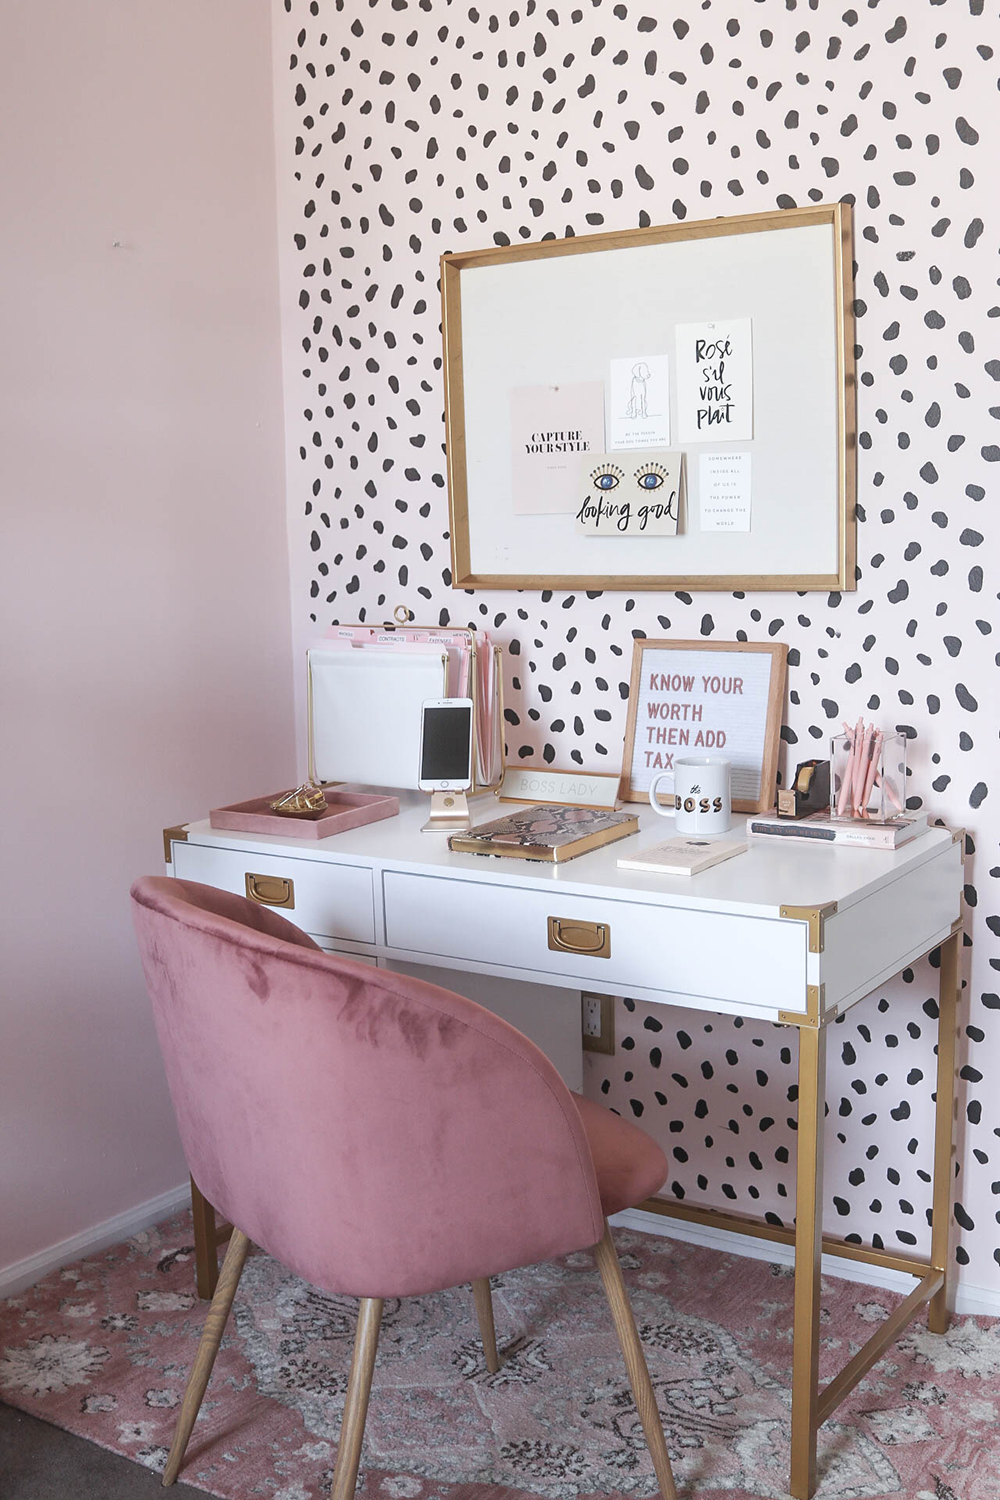 home office chair money. Blogger Office, Neutral Blush Home Decor, Spotted Walls, Wall Stencil, Velvet Chair, Office Chair Money F